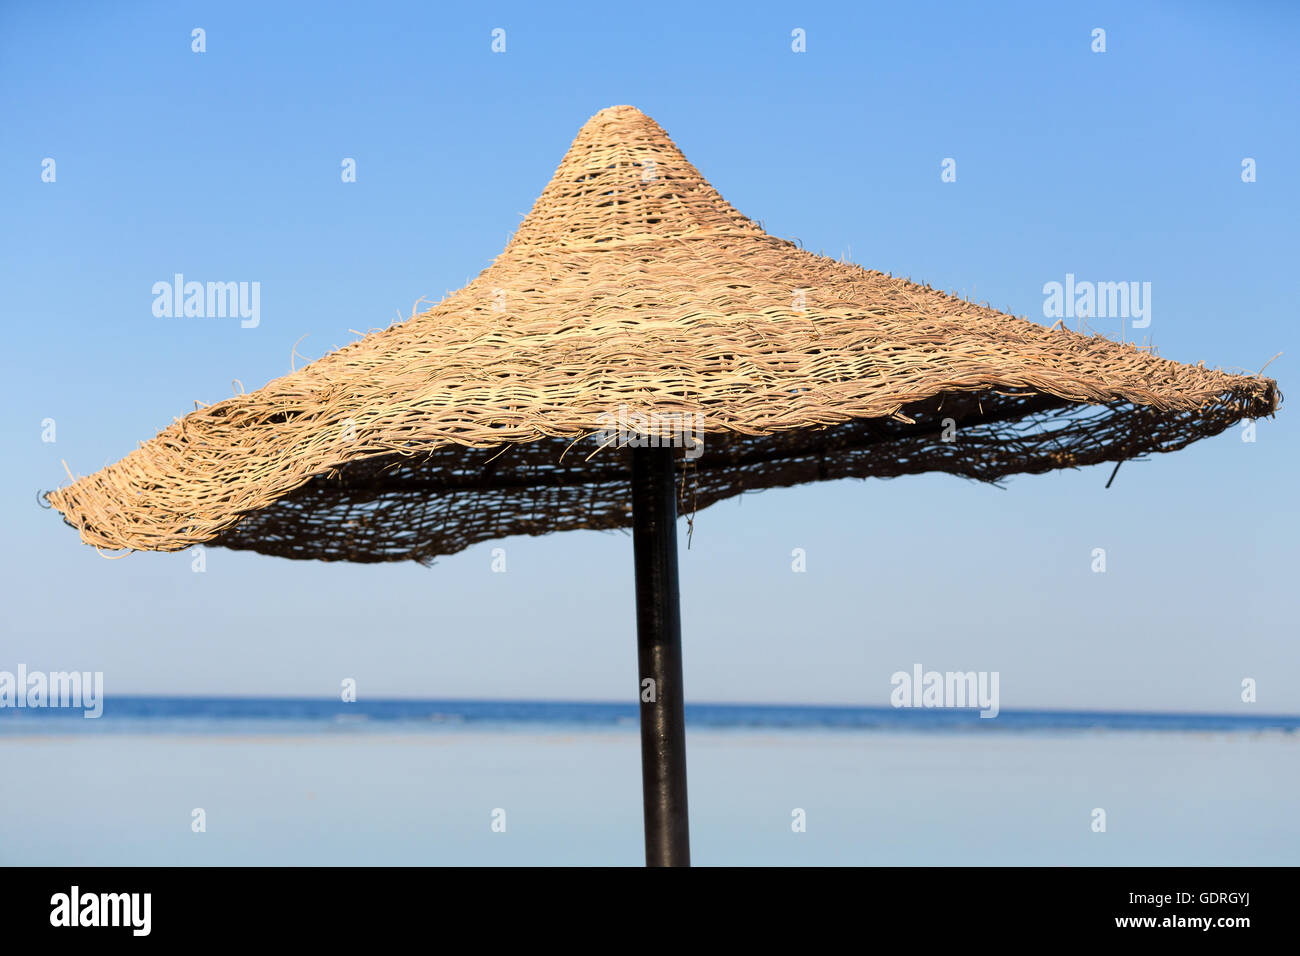 Beach umbrella and blue sky background in egypt paradise beach. vholiday summer acation concept. No People. - Stock Image